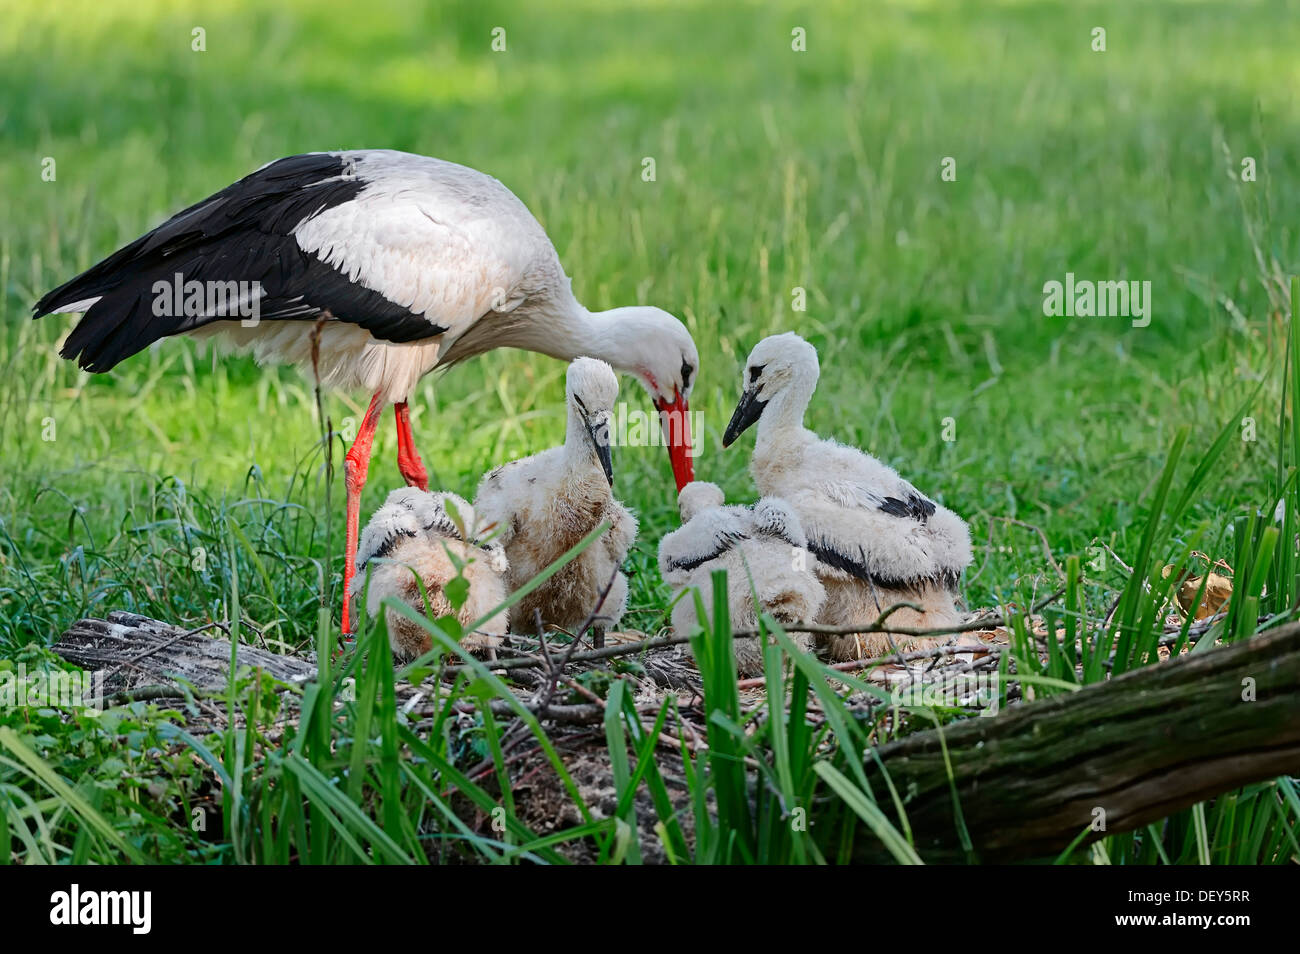 White Stork (Ciconia ciconia) with chicks in the nest, North Rhine-Westphalia, Germany Stock Photo